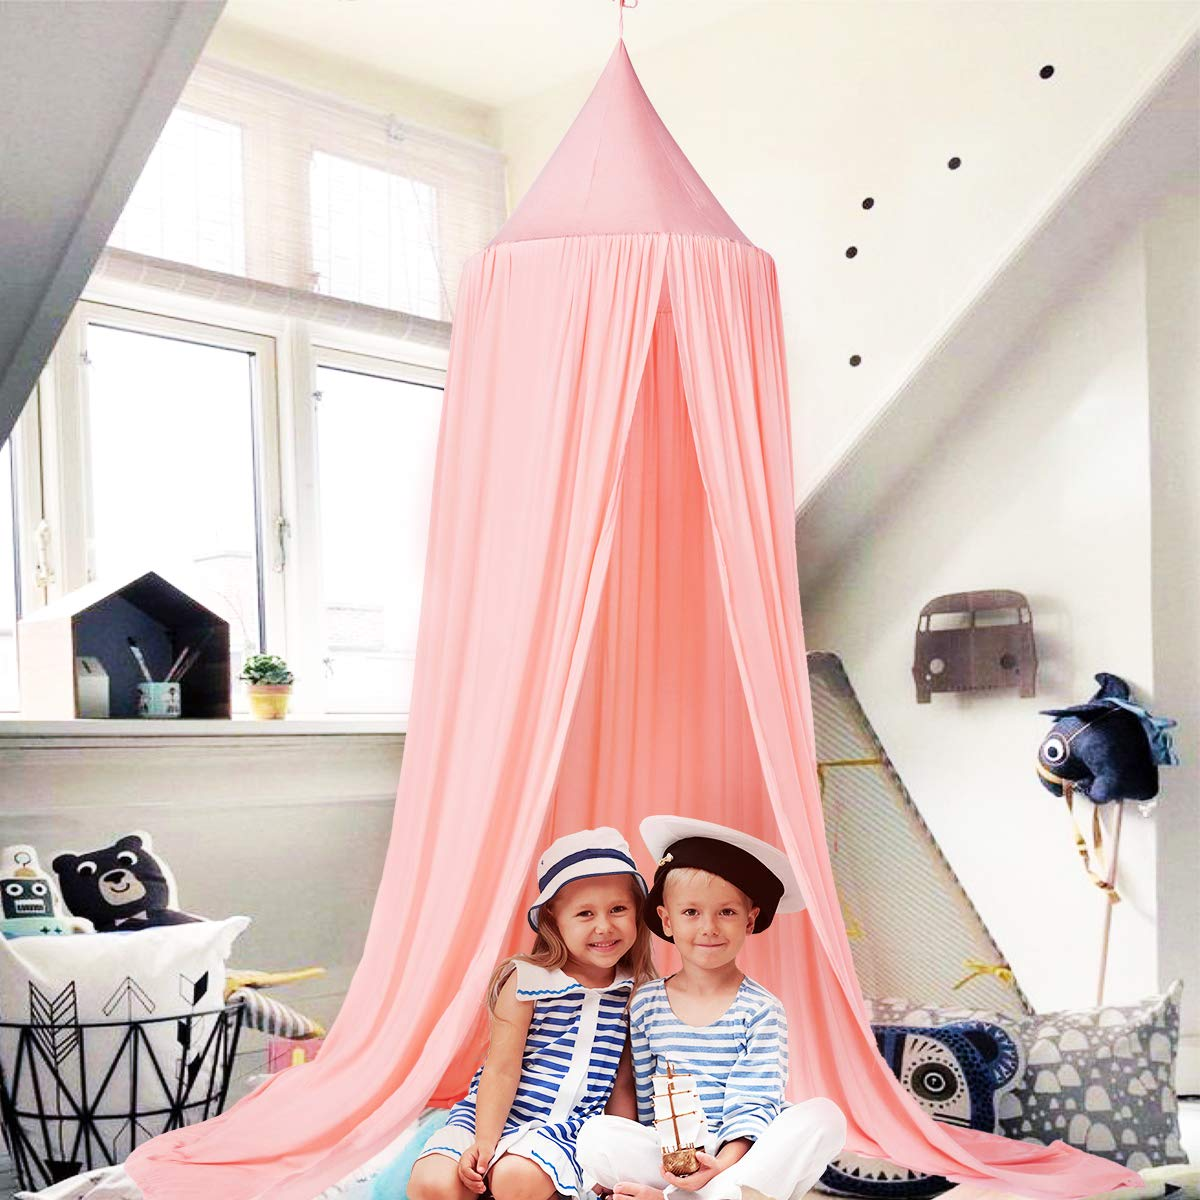 Cotton Dome Princess Bed Canopy for Baby Crib Nook Castle Game Tent Nursery Play Room Decor Princess Bed Canopy for Kids Baby Bed